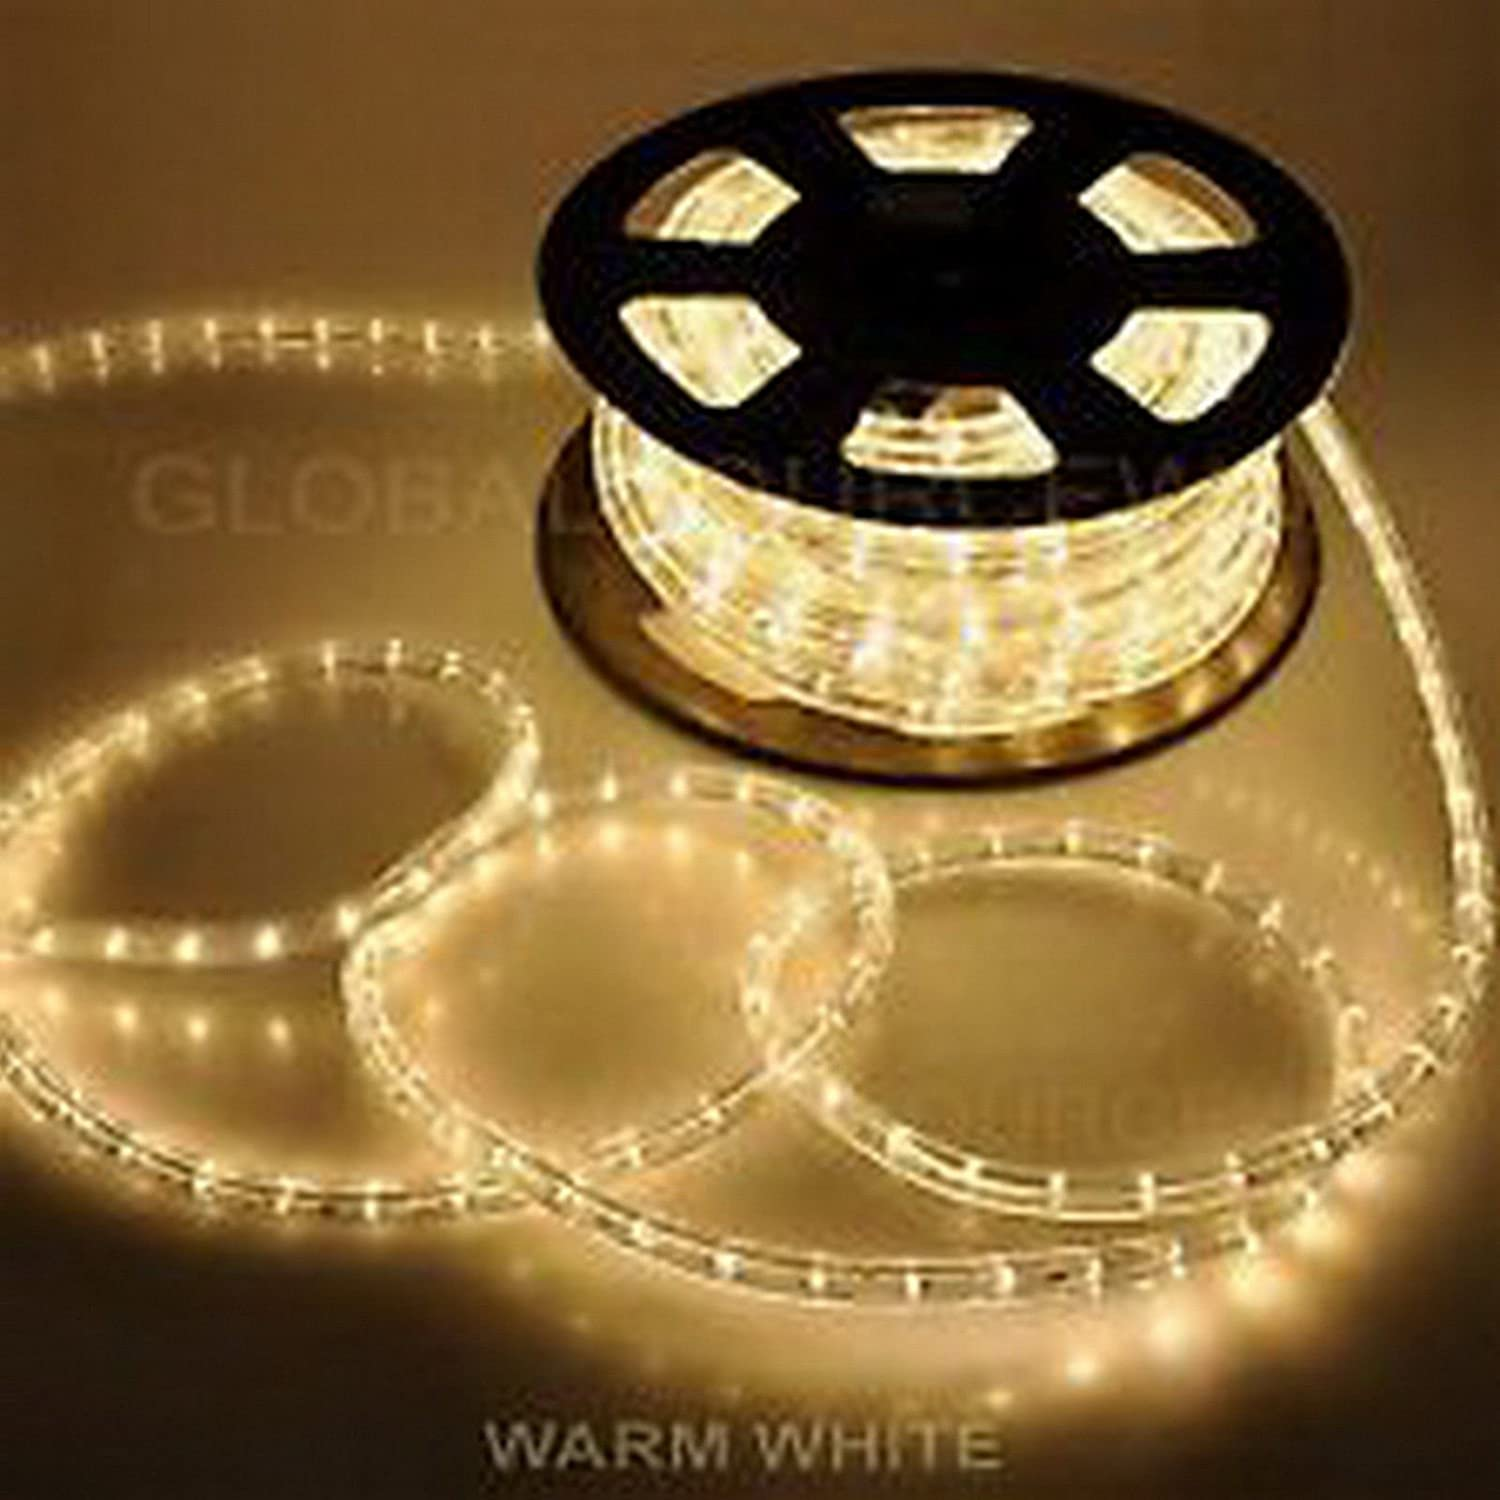 Amazon incandescent warm white rope light 12 in 2 amazon incandescent warm white rope light 12 in 2 wire 120 volt 150 ft spool american 033 cl home improvement mozeypictures Choice Image